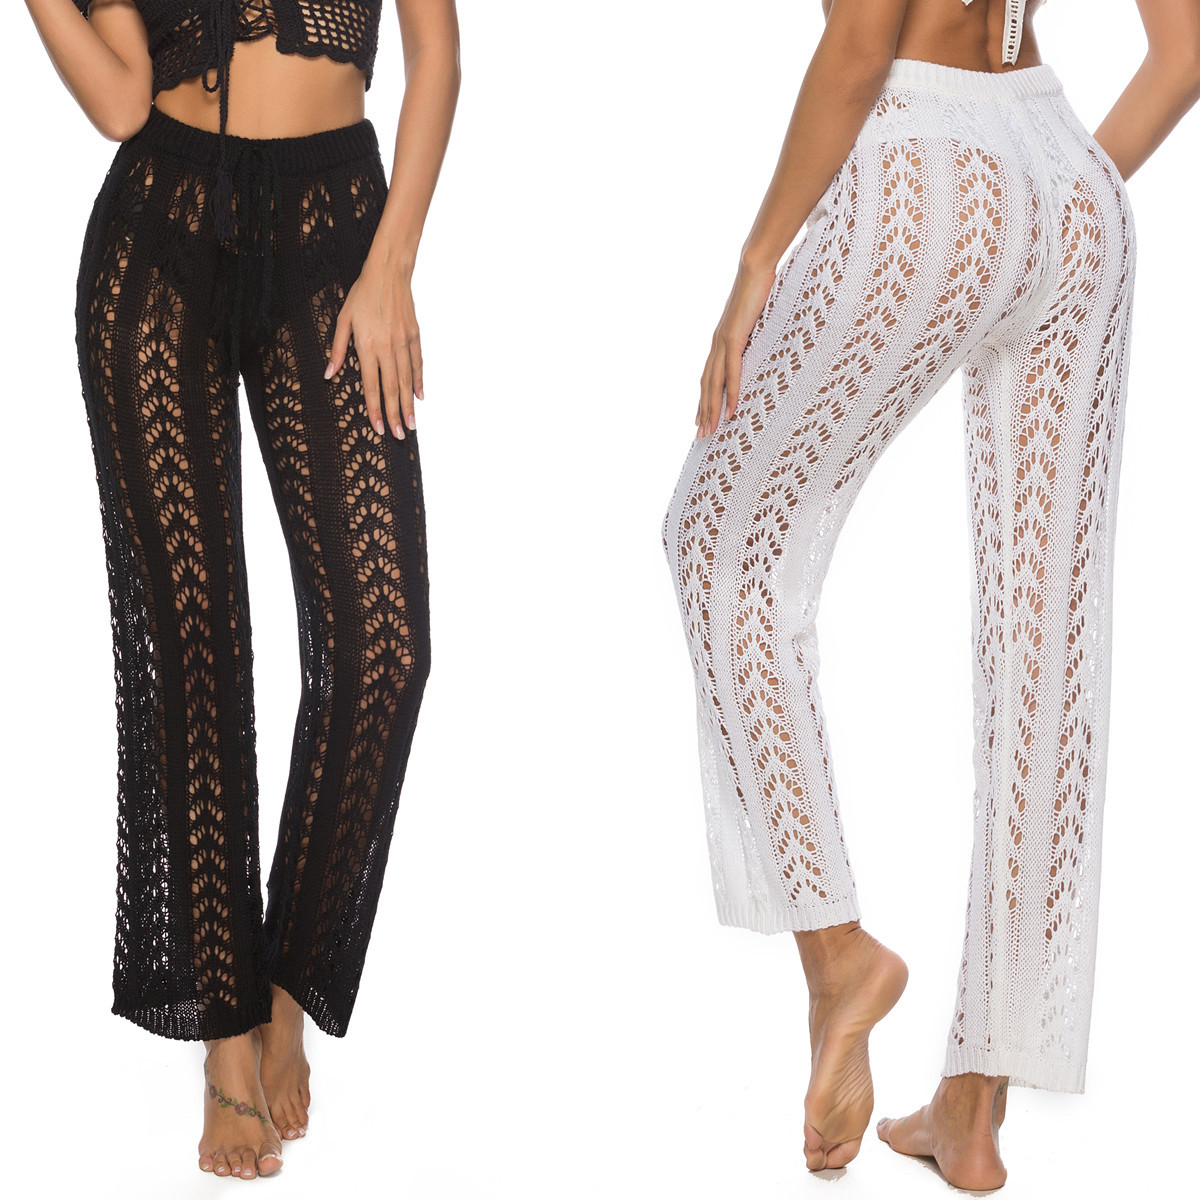 Stylish Mesh Pattern Lacy High Waist Swimsuit Cover Up Pants Handmade